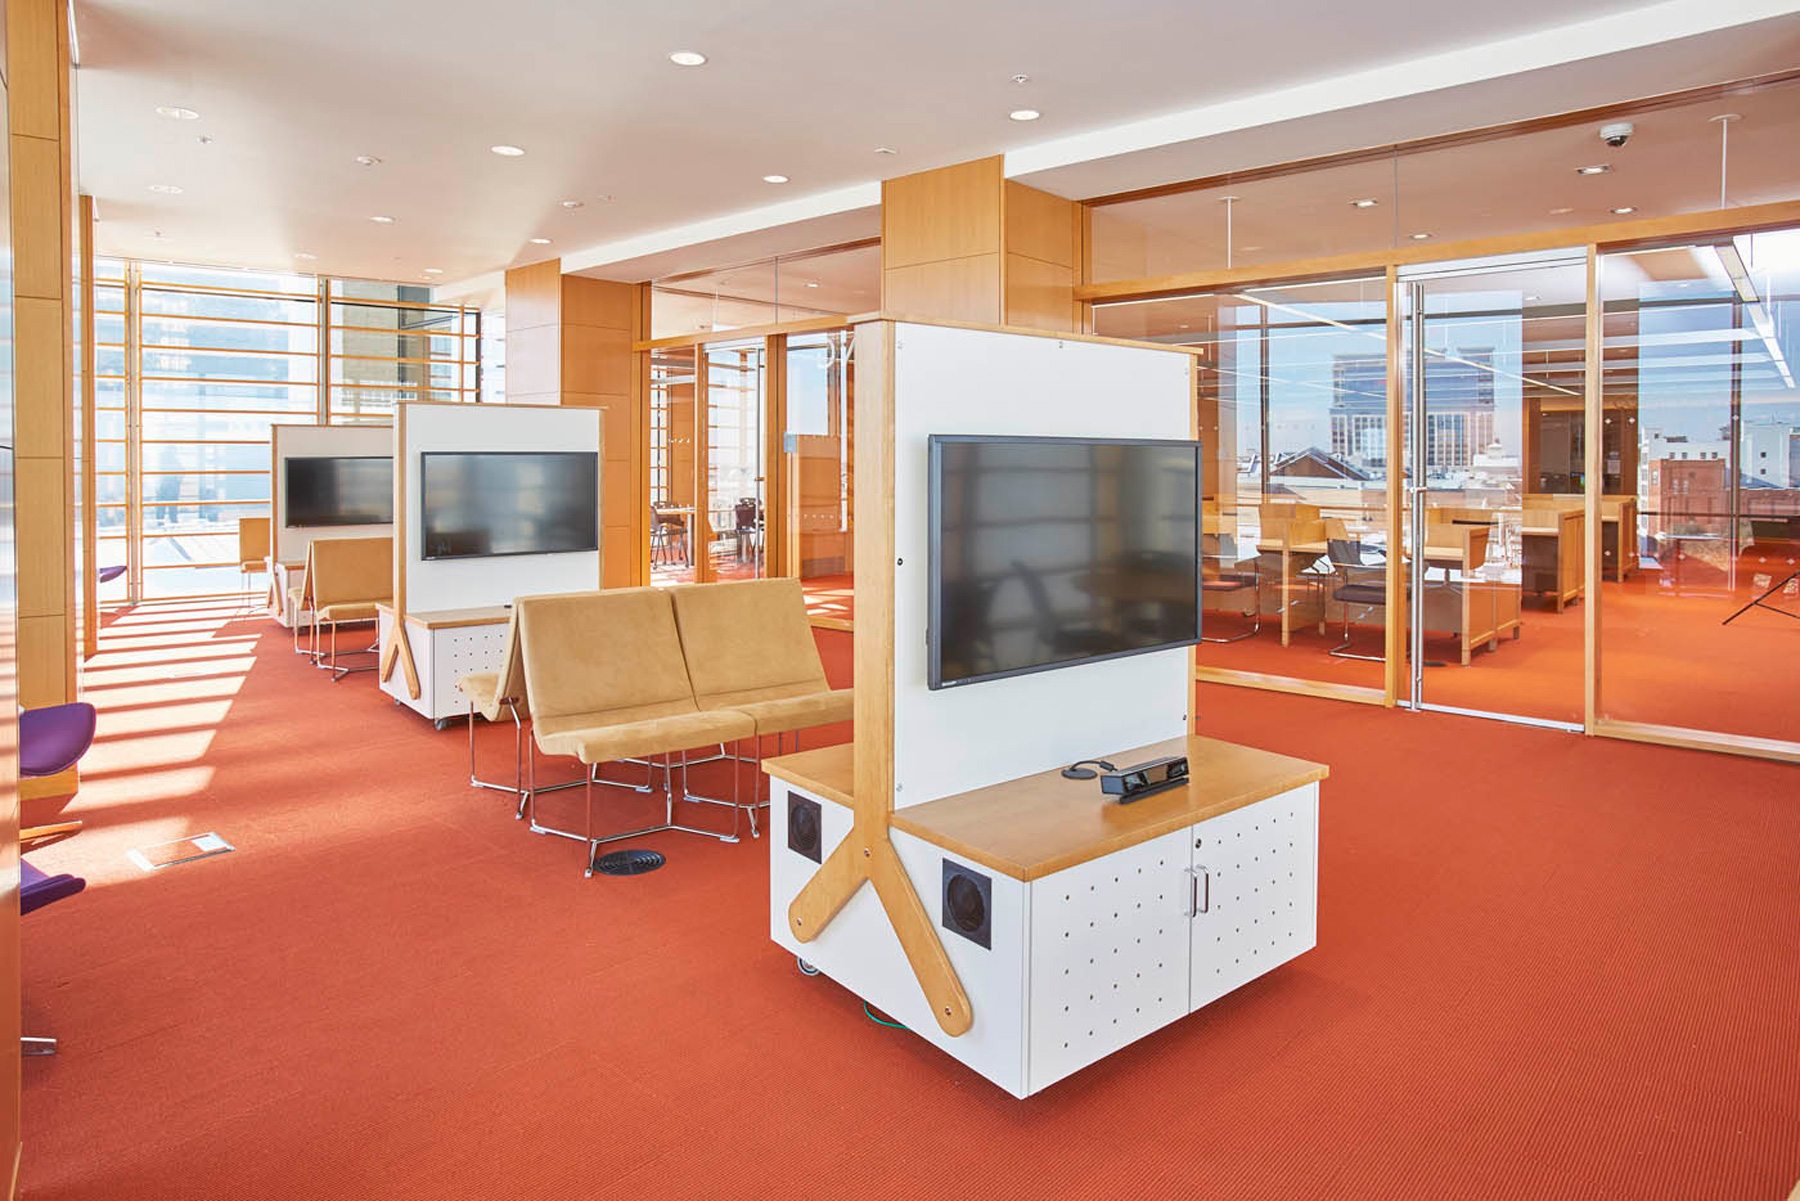 Slover Library Remodel Past Meets Future